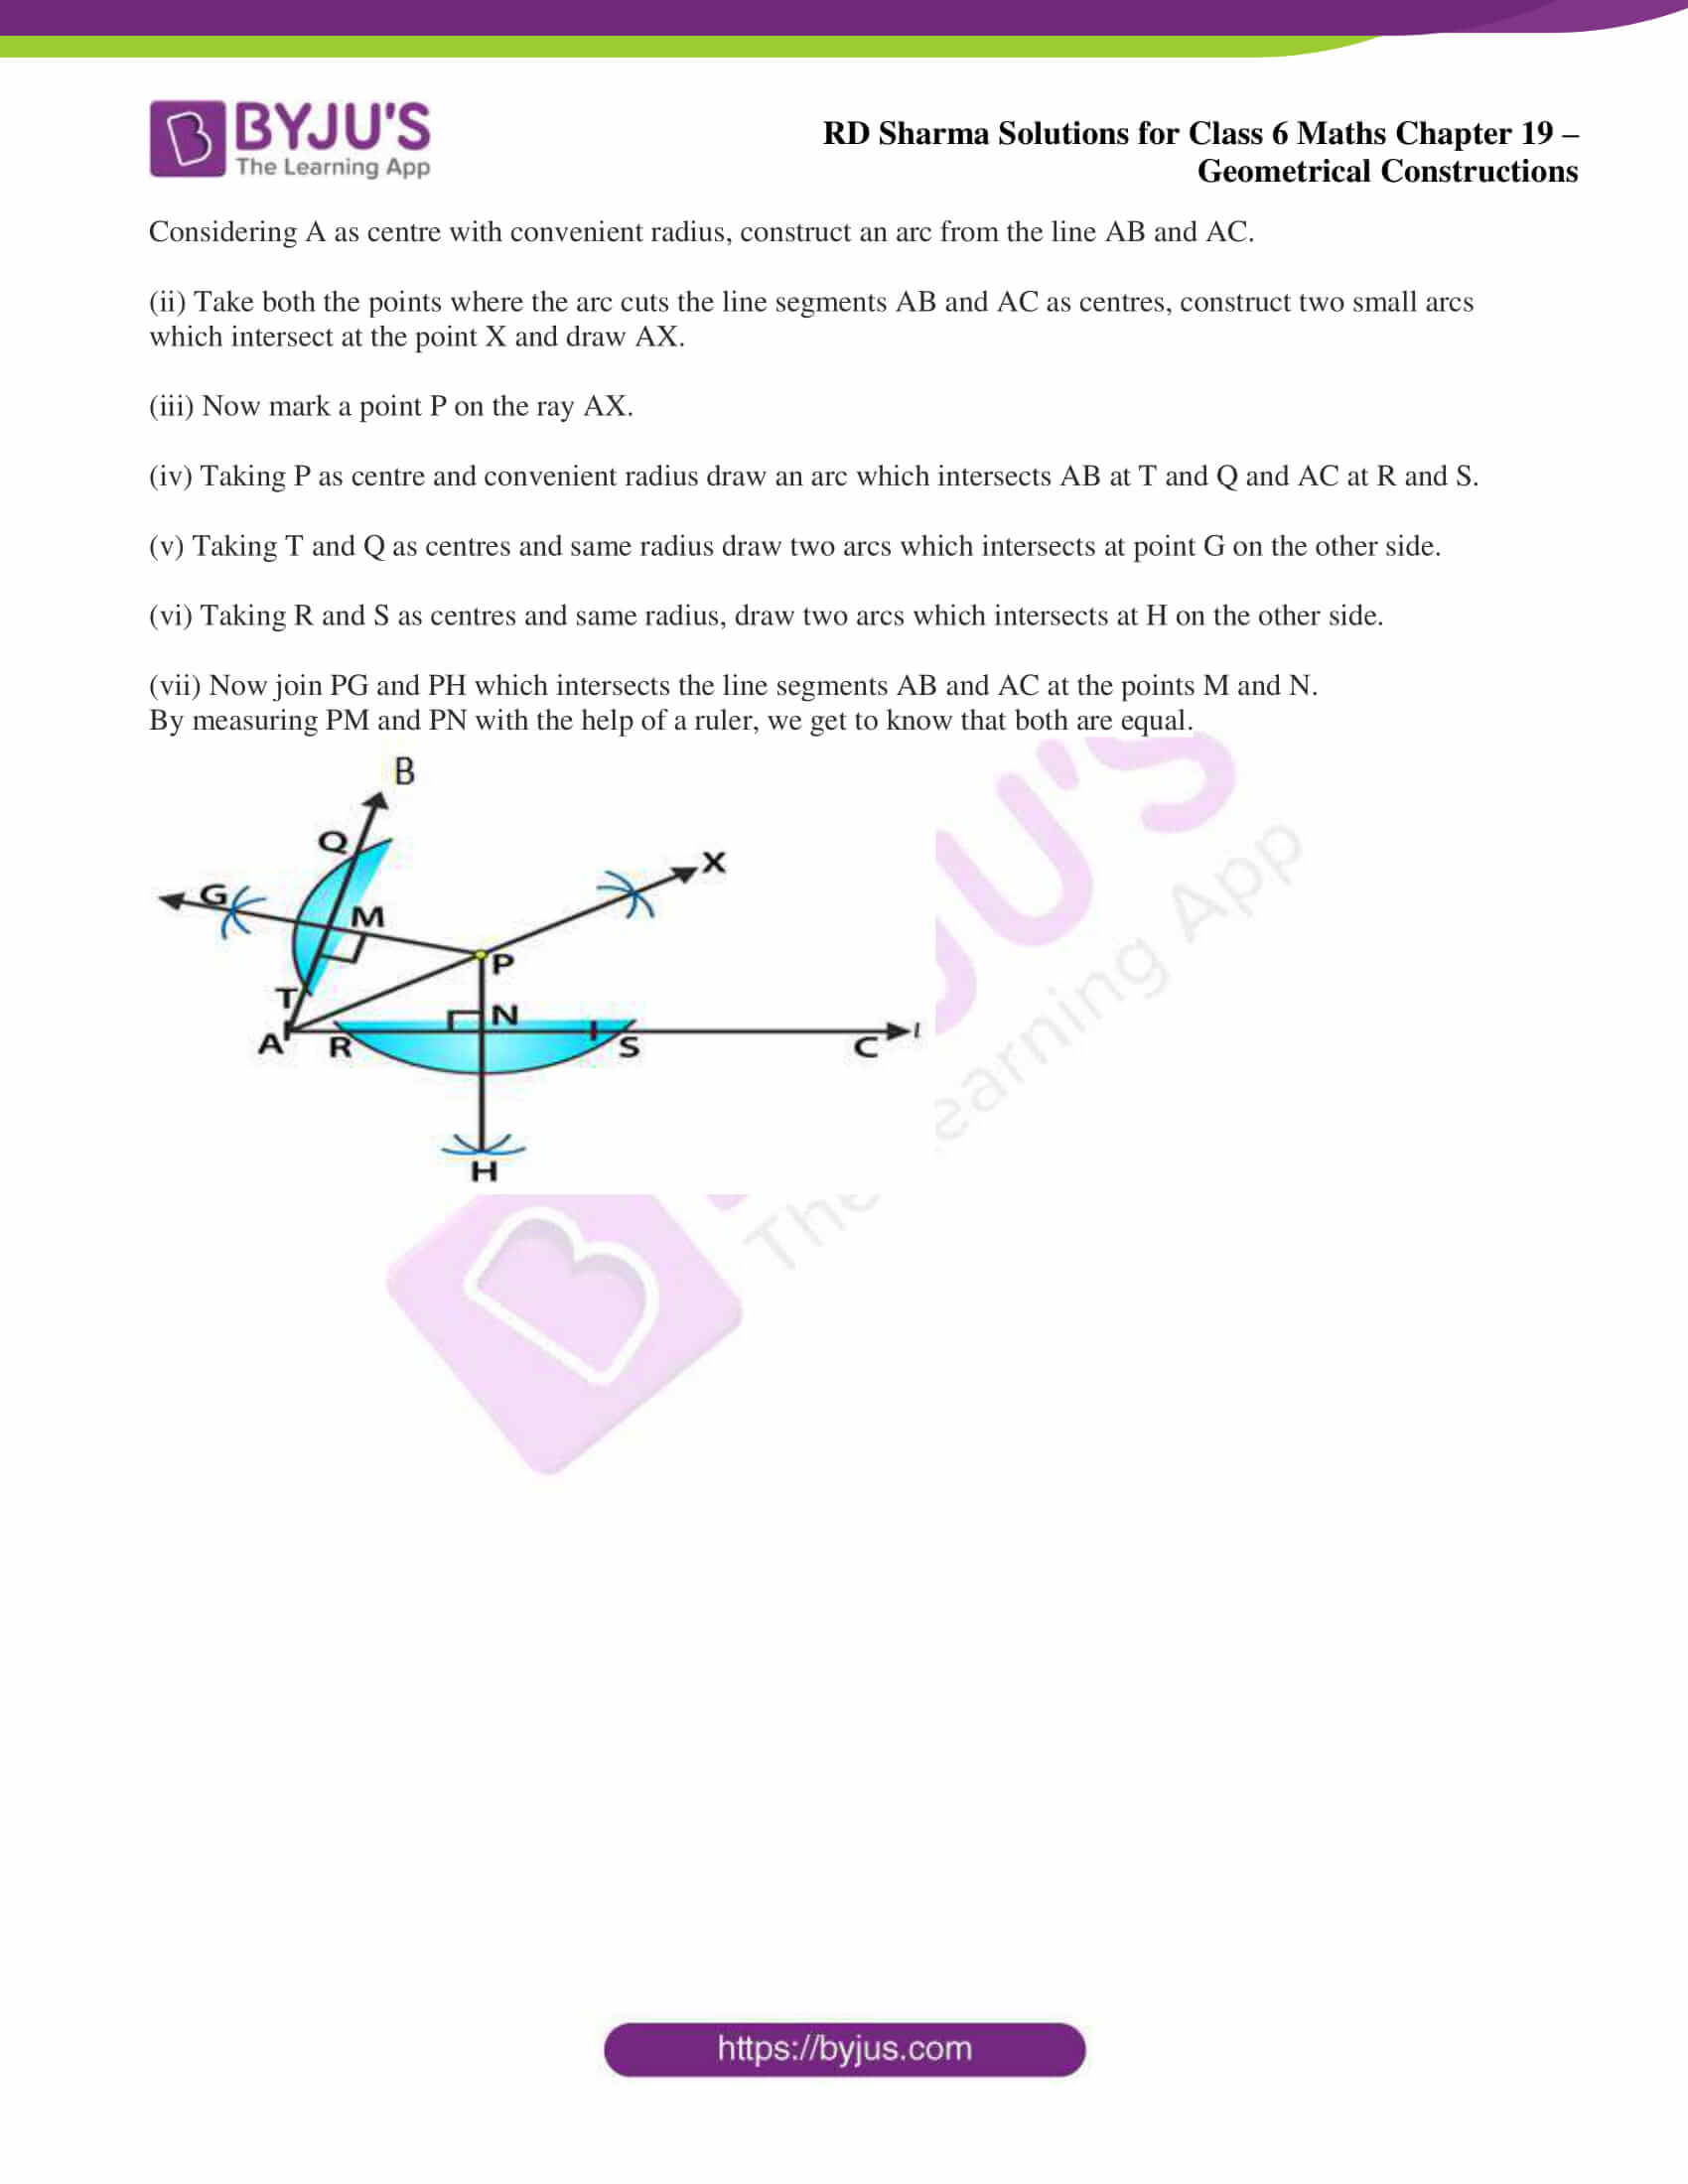 rd sharma solutions nov2020 class 6 maths chapter 19 exercise 2 9